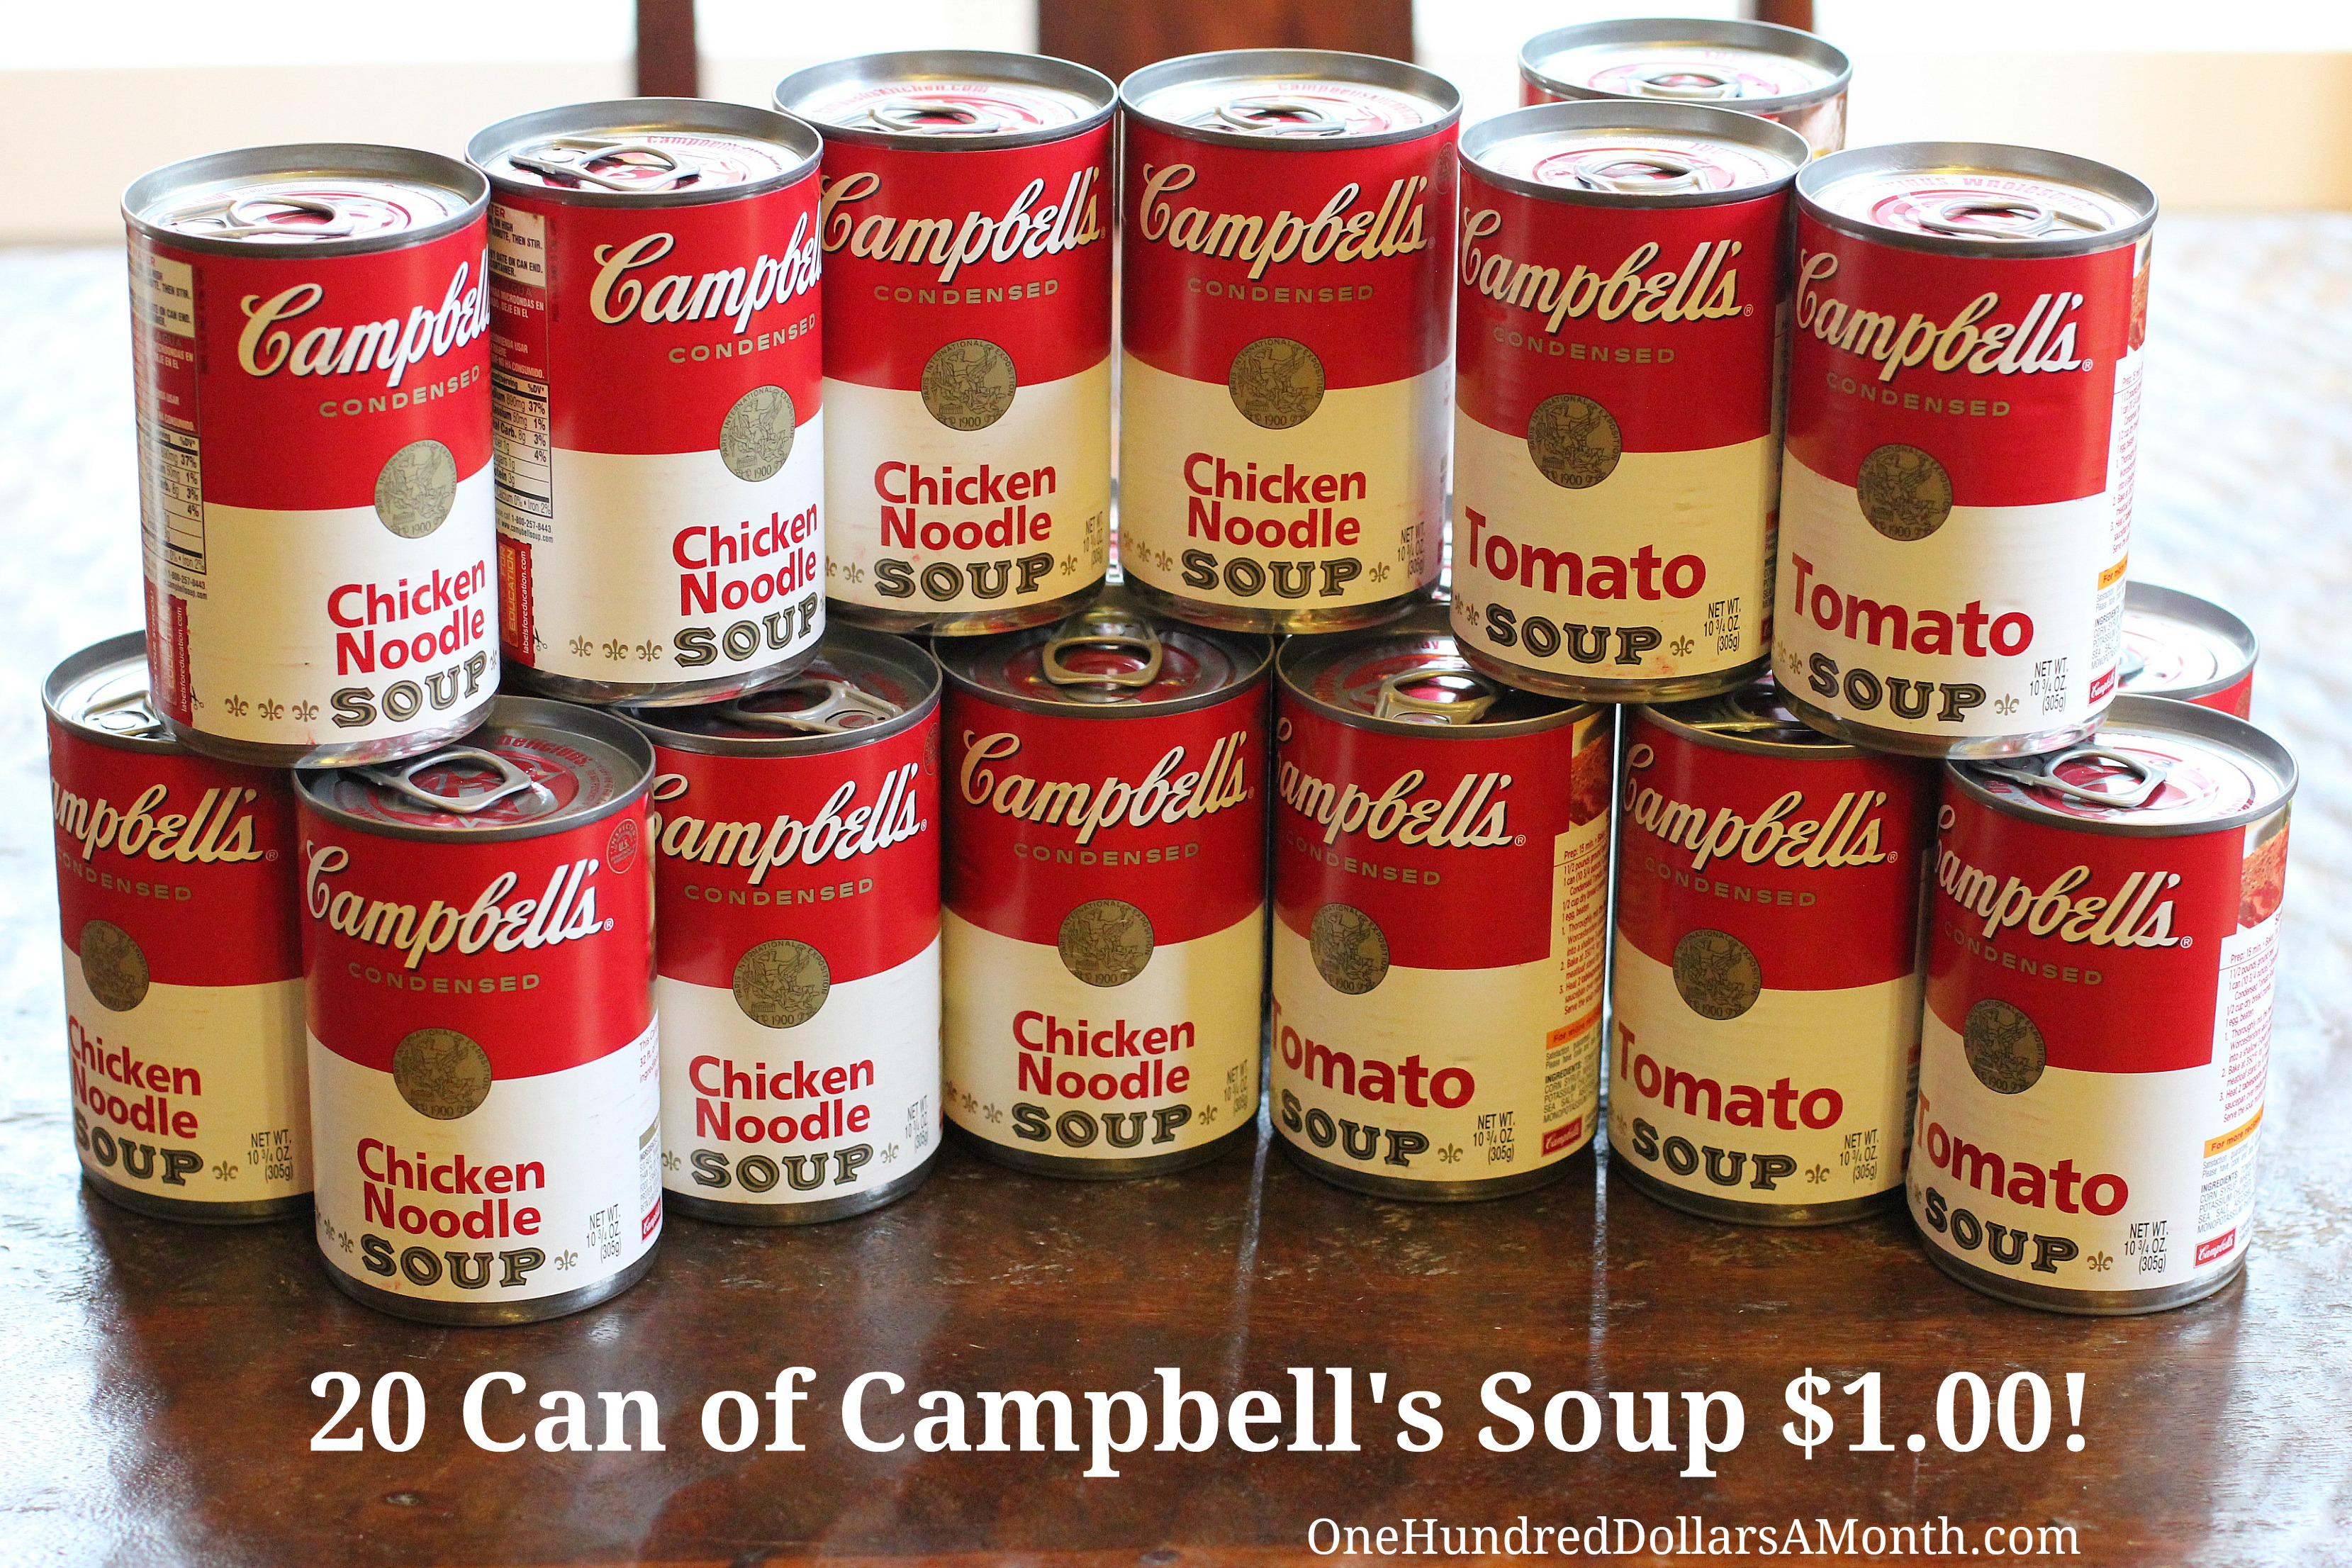 Albertsons – Campbell's Soup Only $.05 After Catalina!